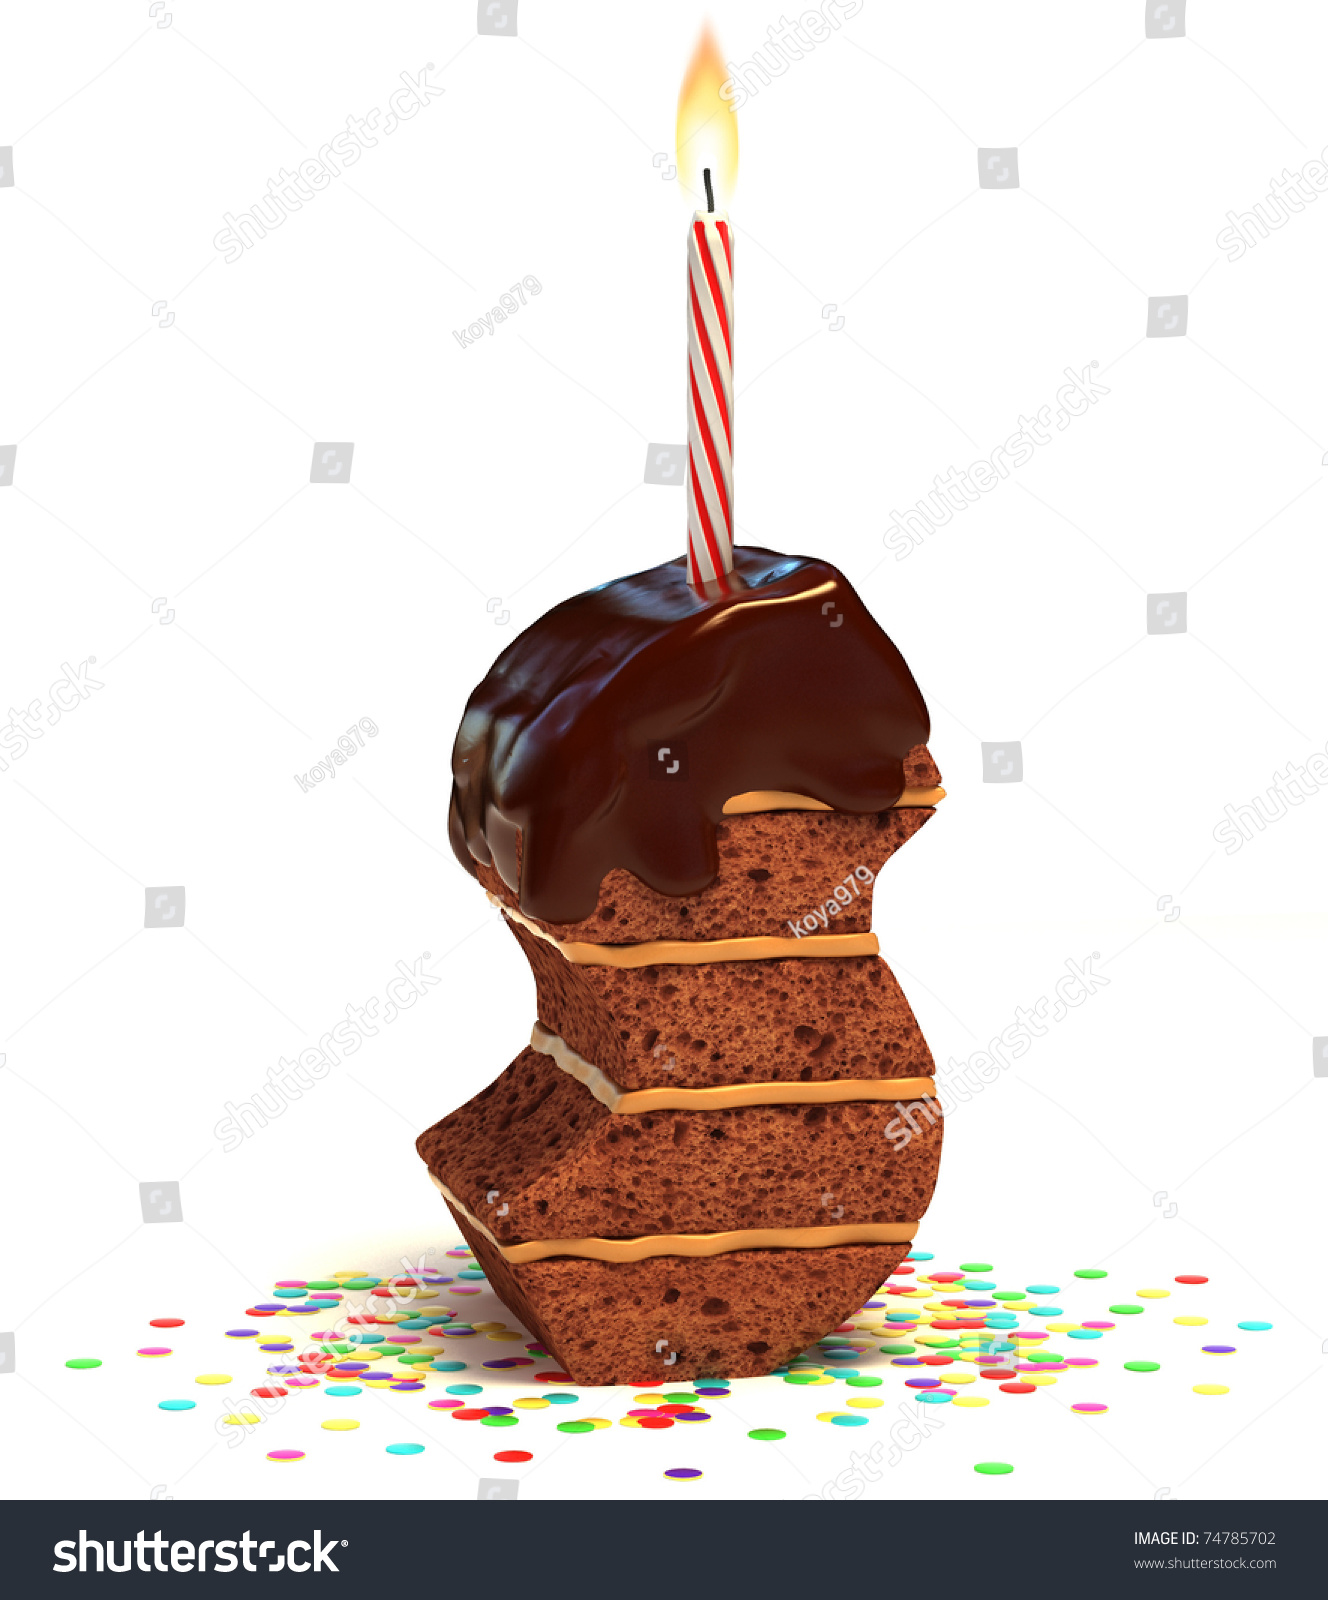 S Shaped Cake Images : Letter S Shaped Chocolate Birthday Cake With Lit Candle ...